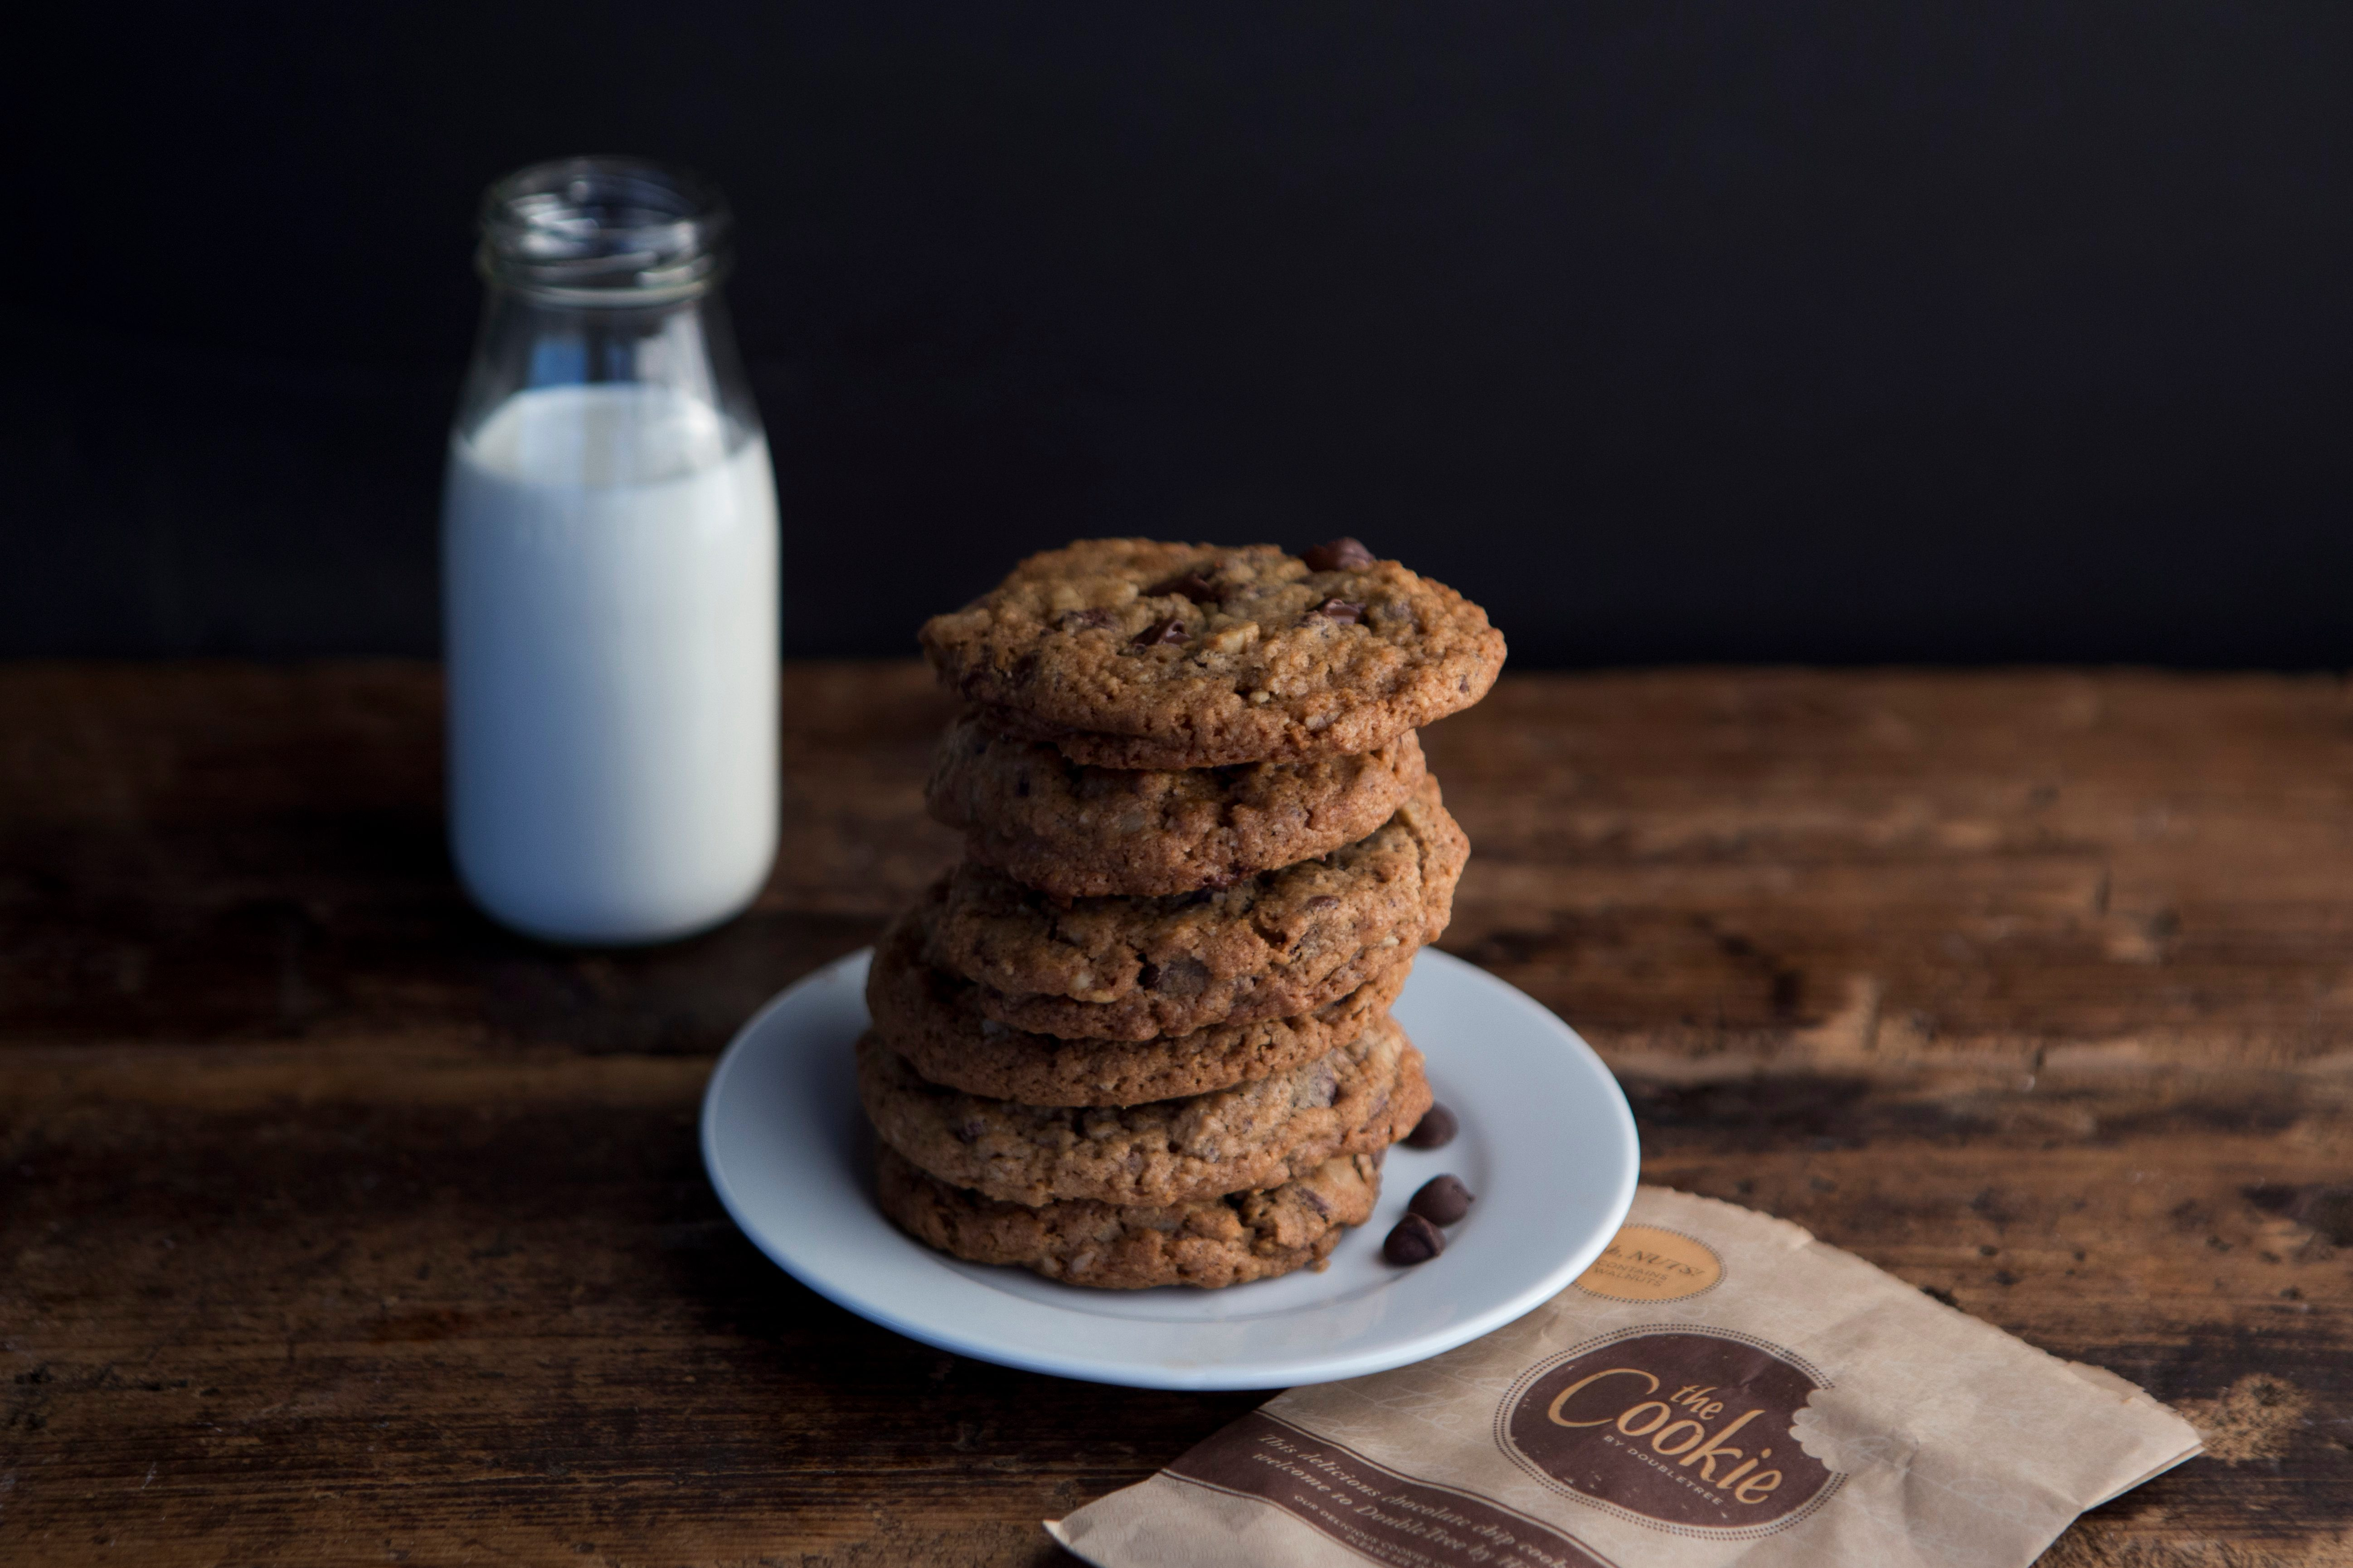 doubletree by hilton chocolate chip cookies recipe